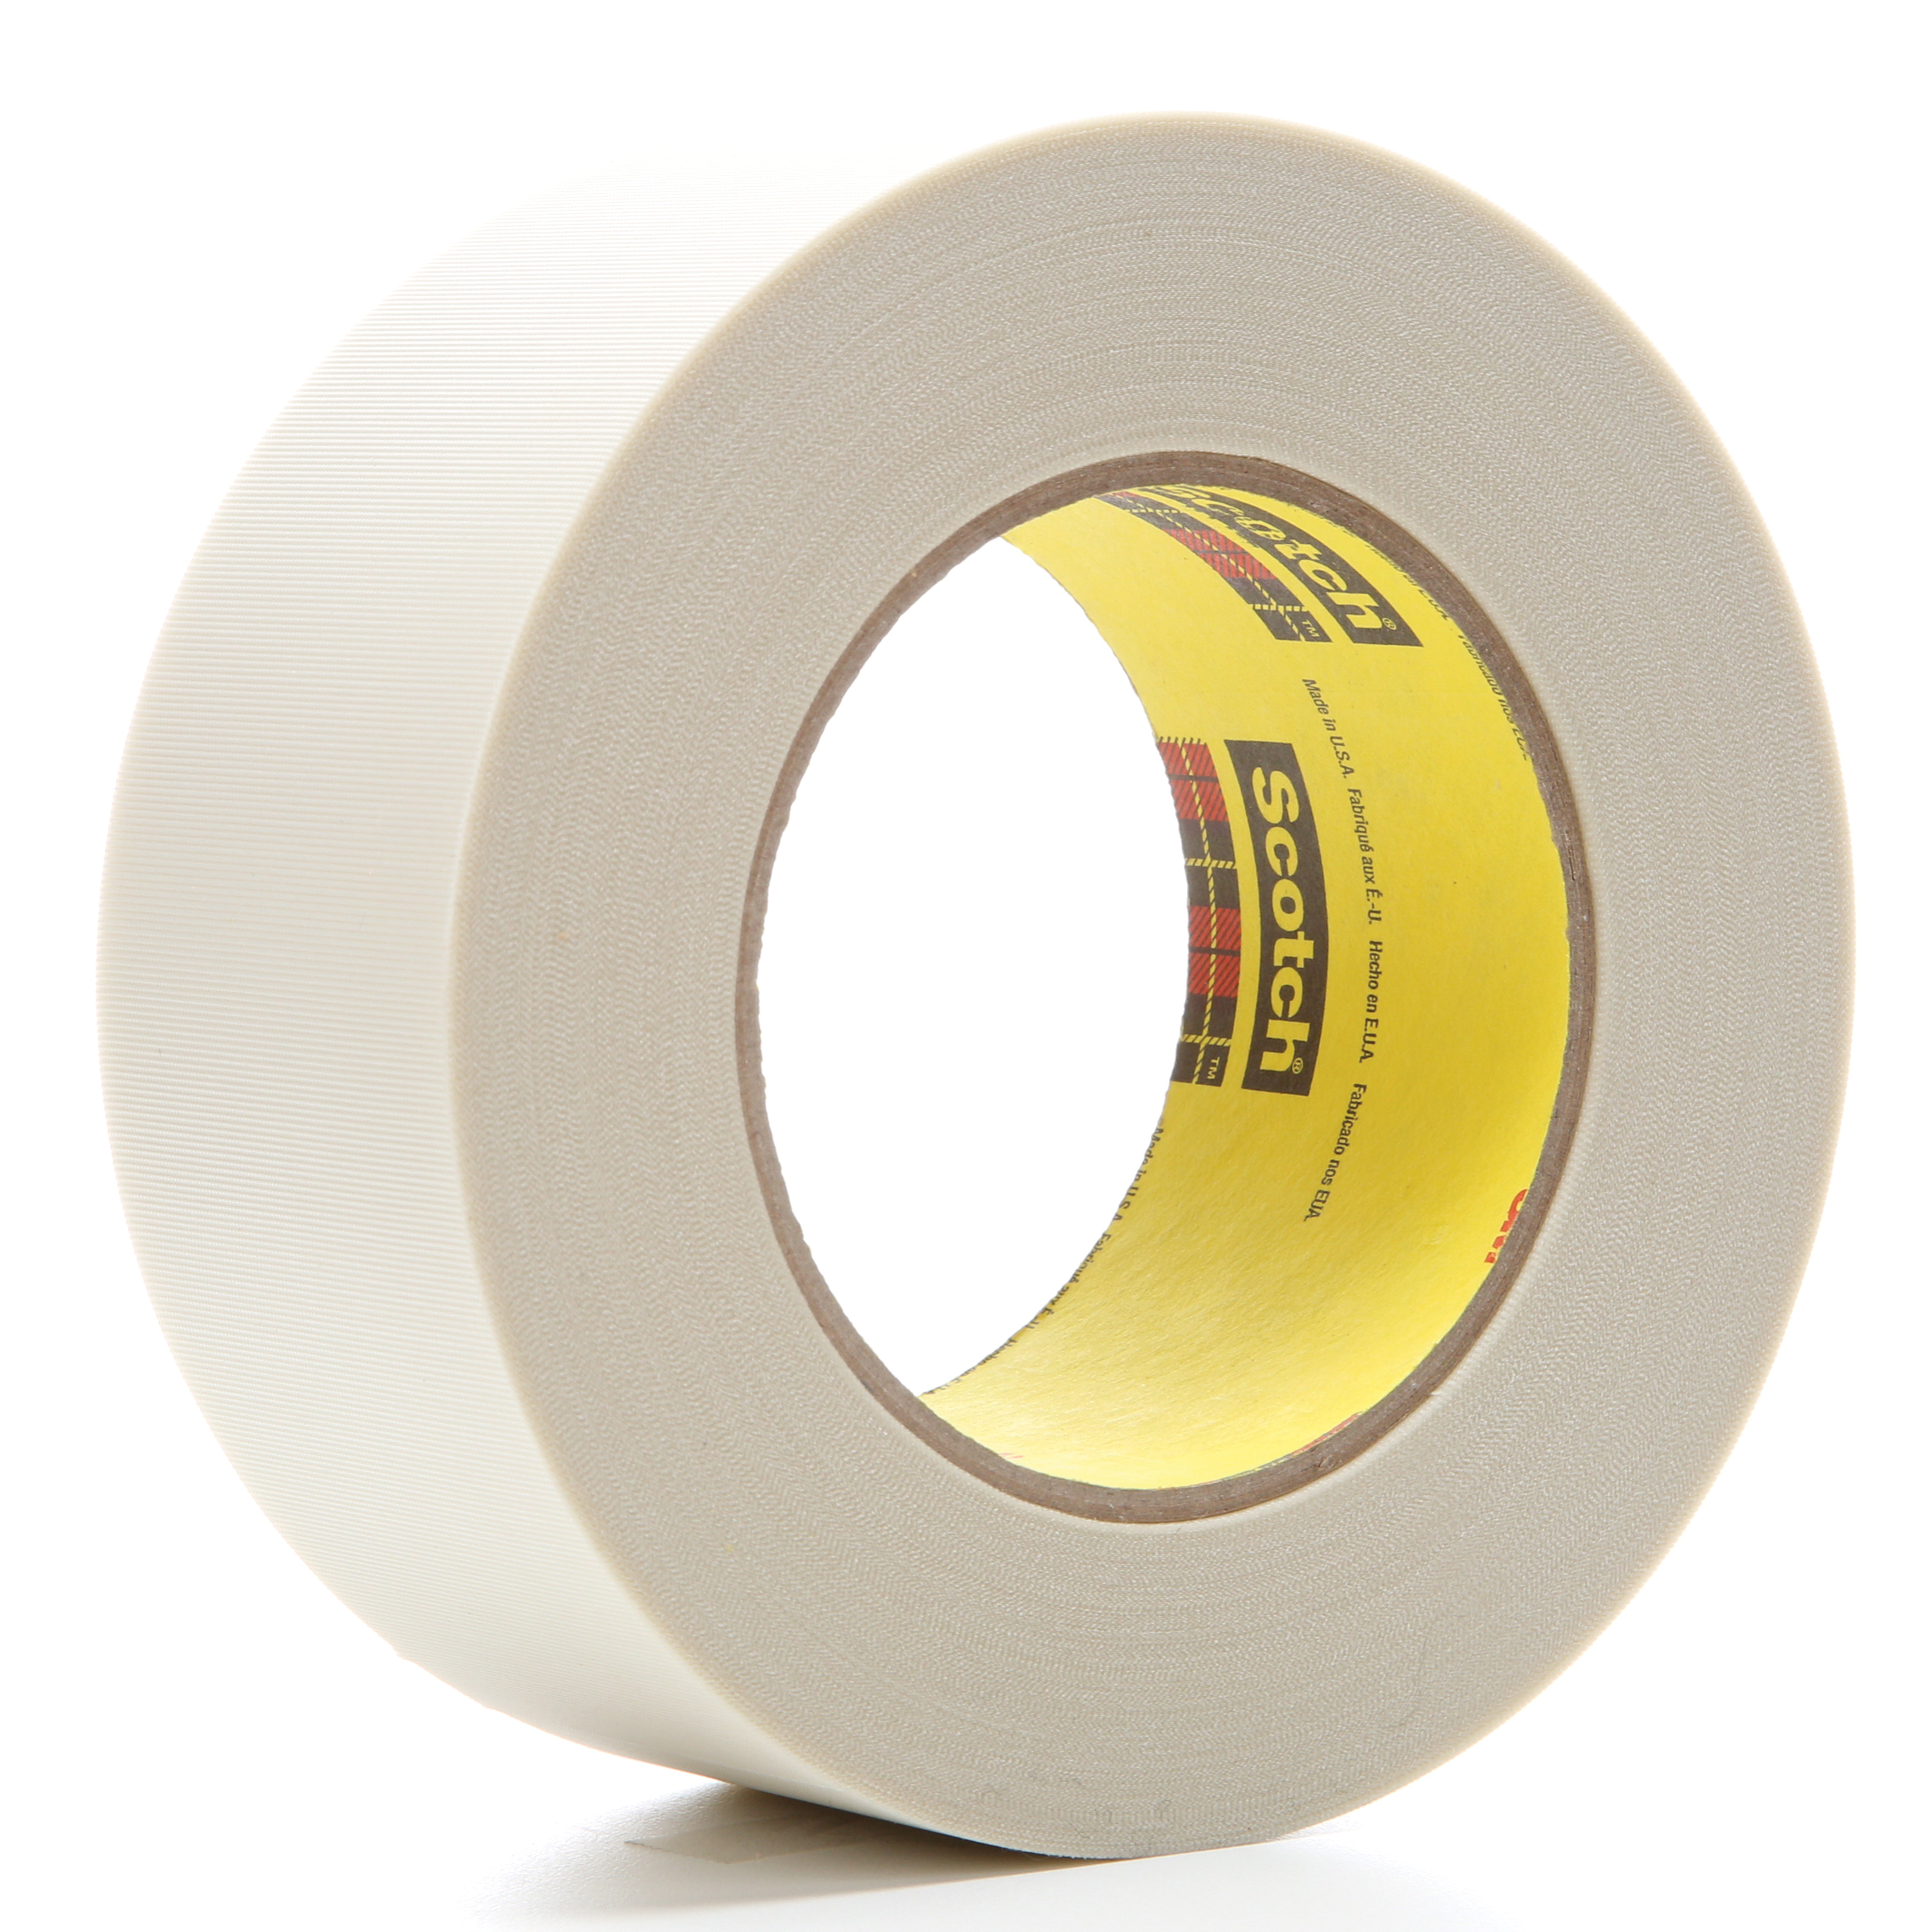 3M™ 021200-04275 Cloth Tape, 60 yd L x 2 in W, 6.4 mil THK, Silicone Adhesive, Glass Cloth Backing, White